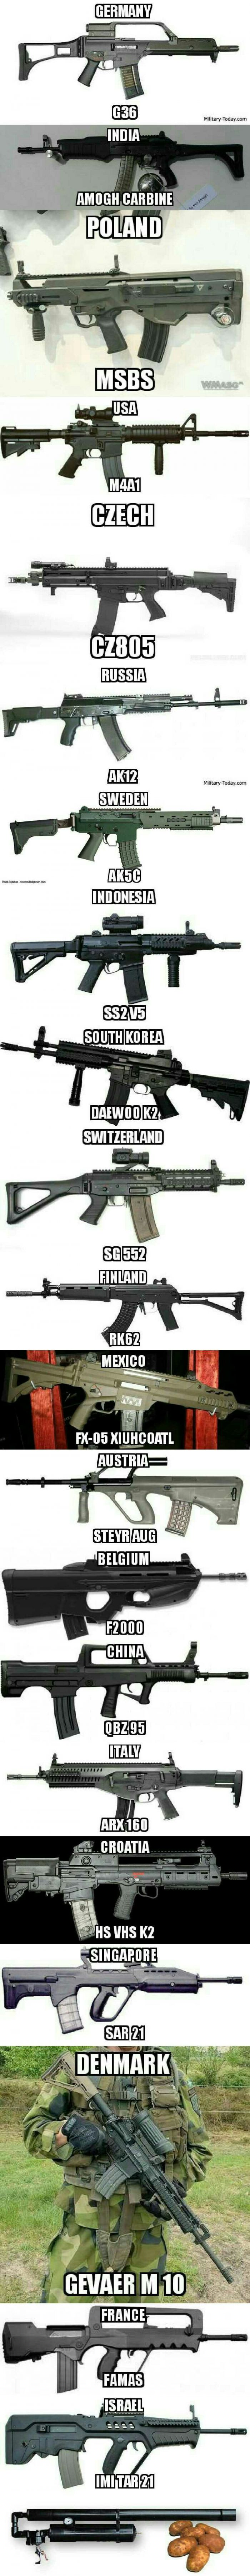 Assault rifles around the world part 1, comment your country's assault rifle for part 2